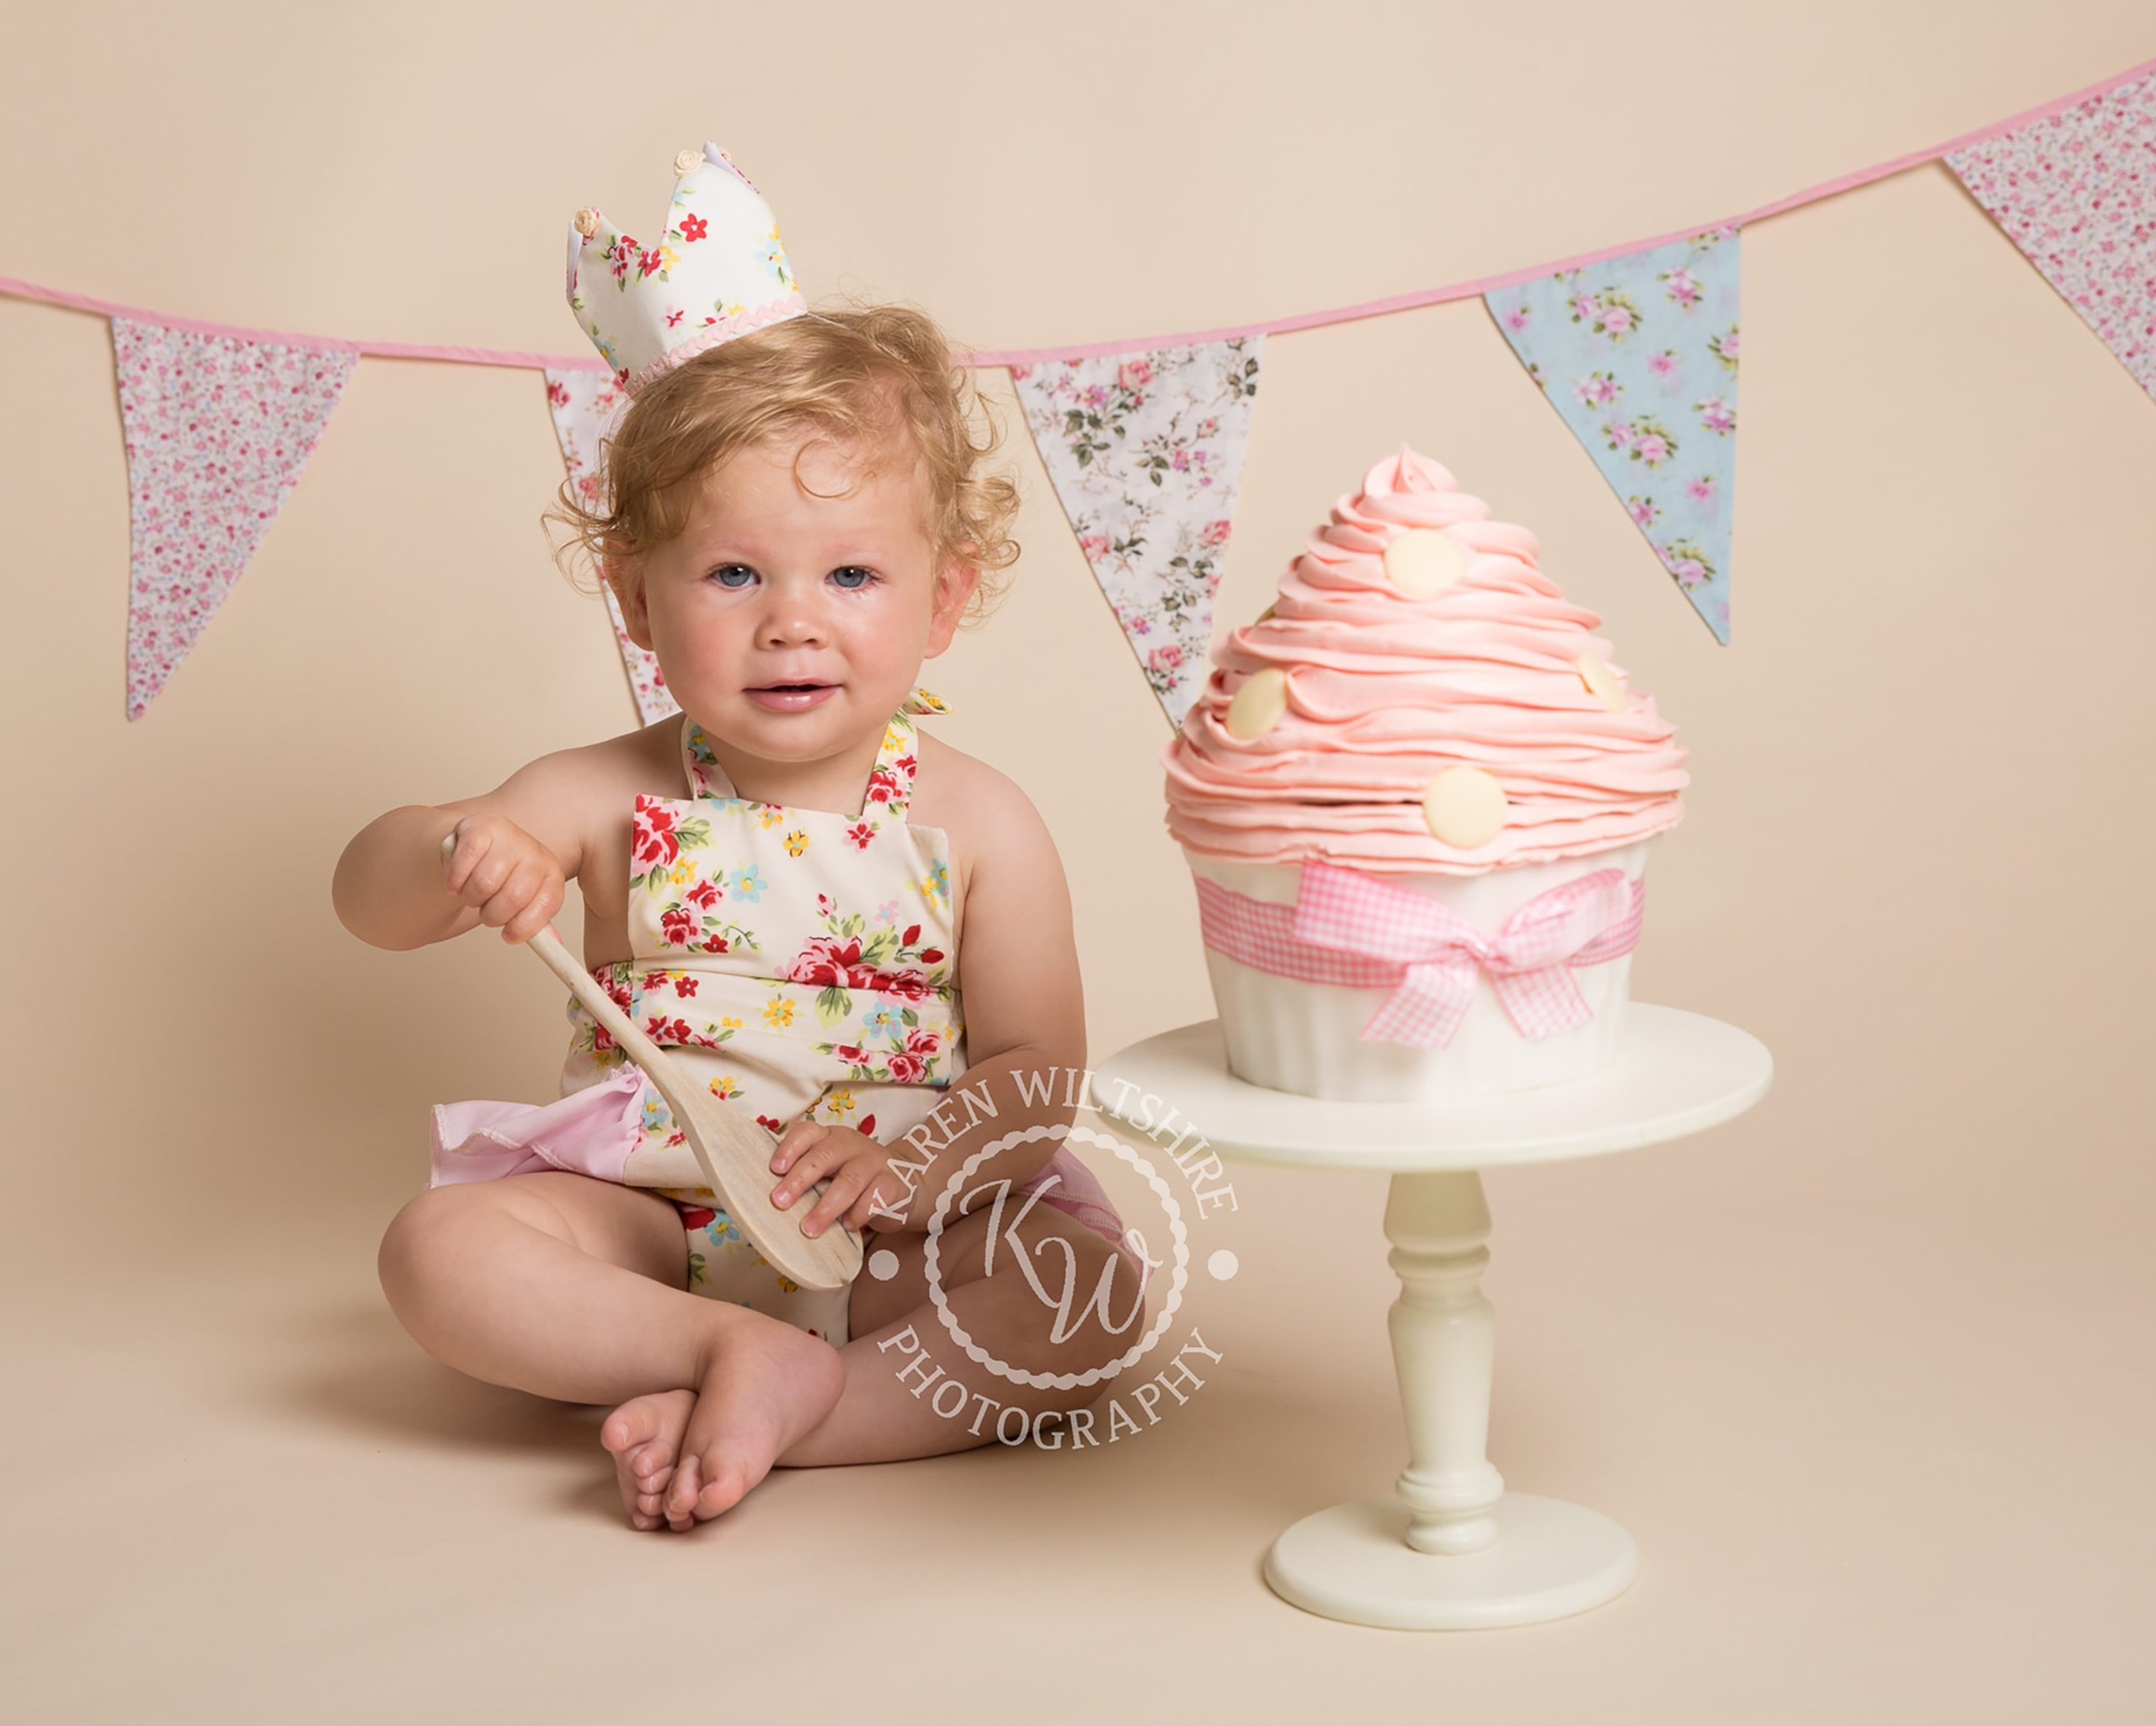 curly haired baby girl ready to smash her cake